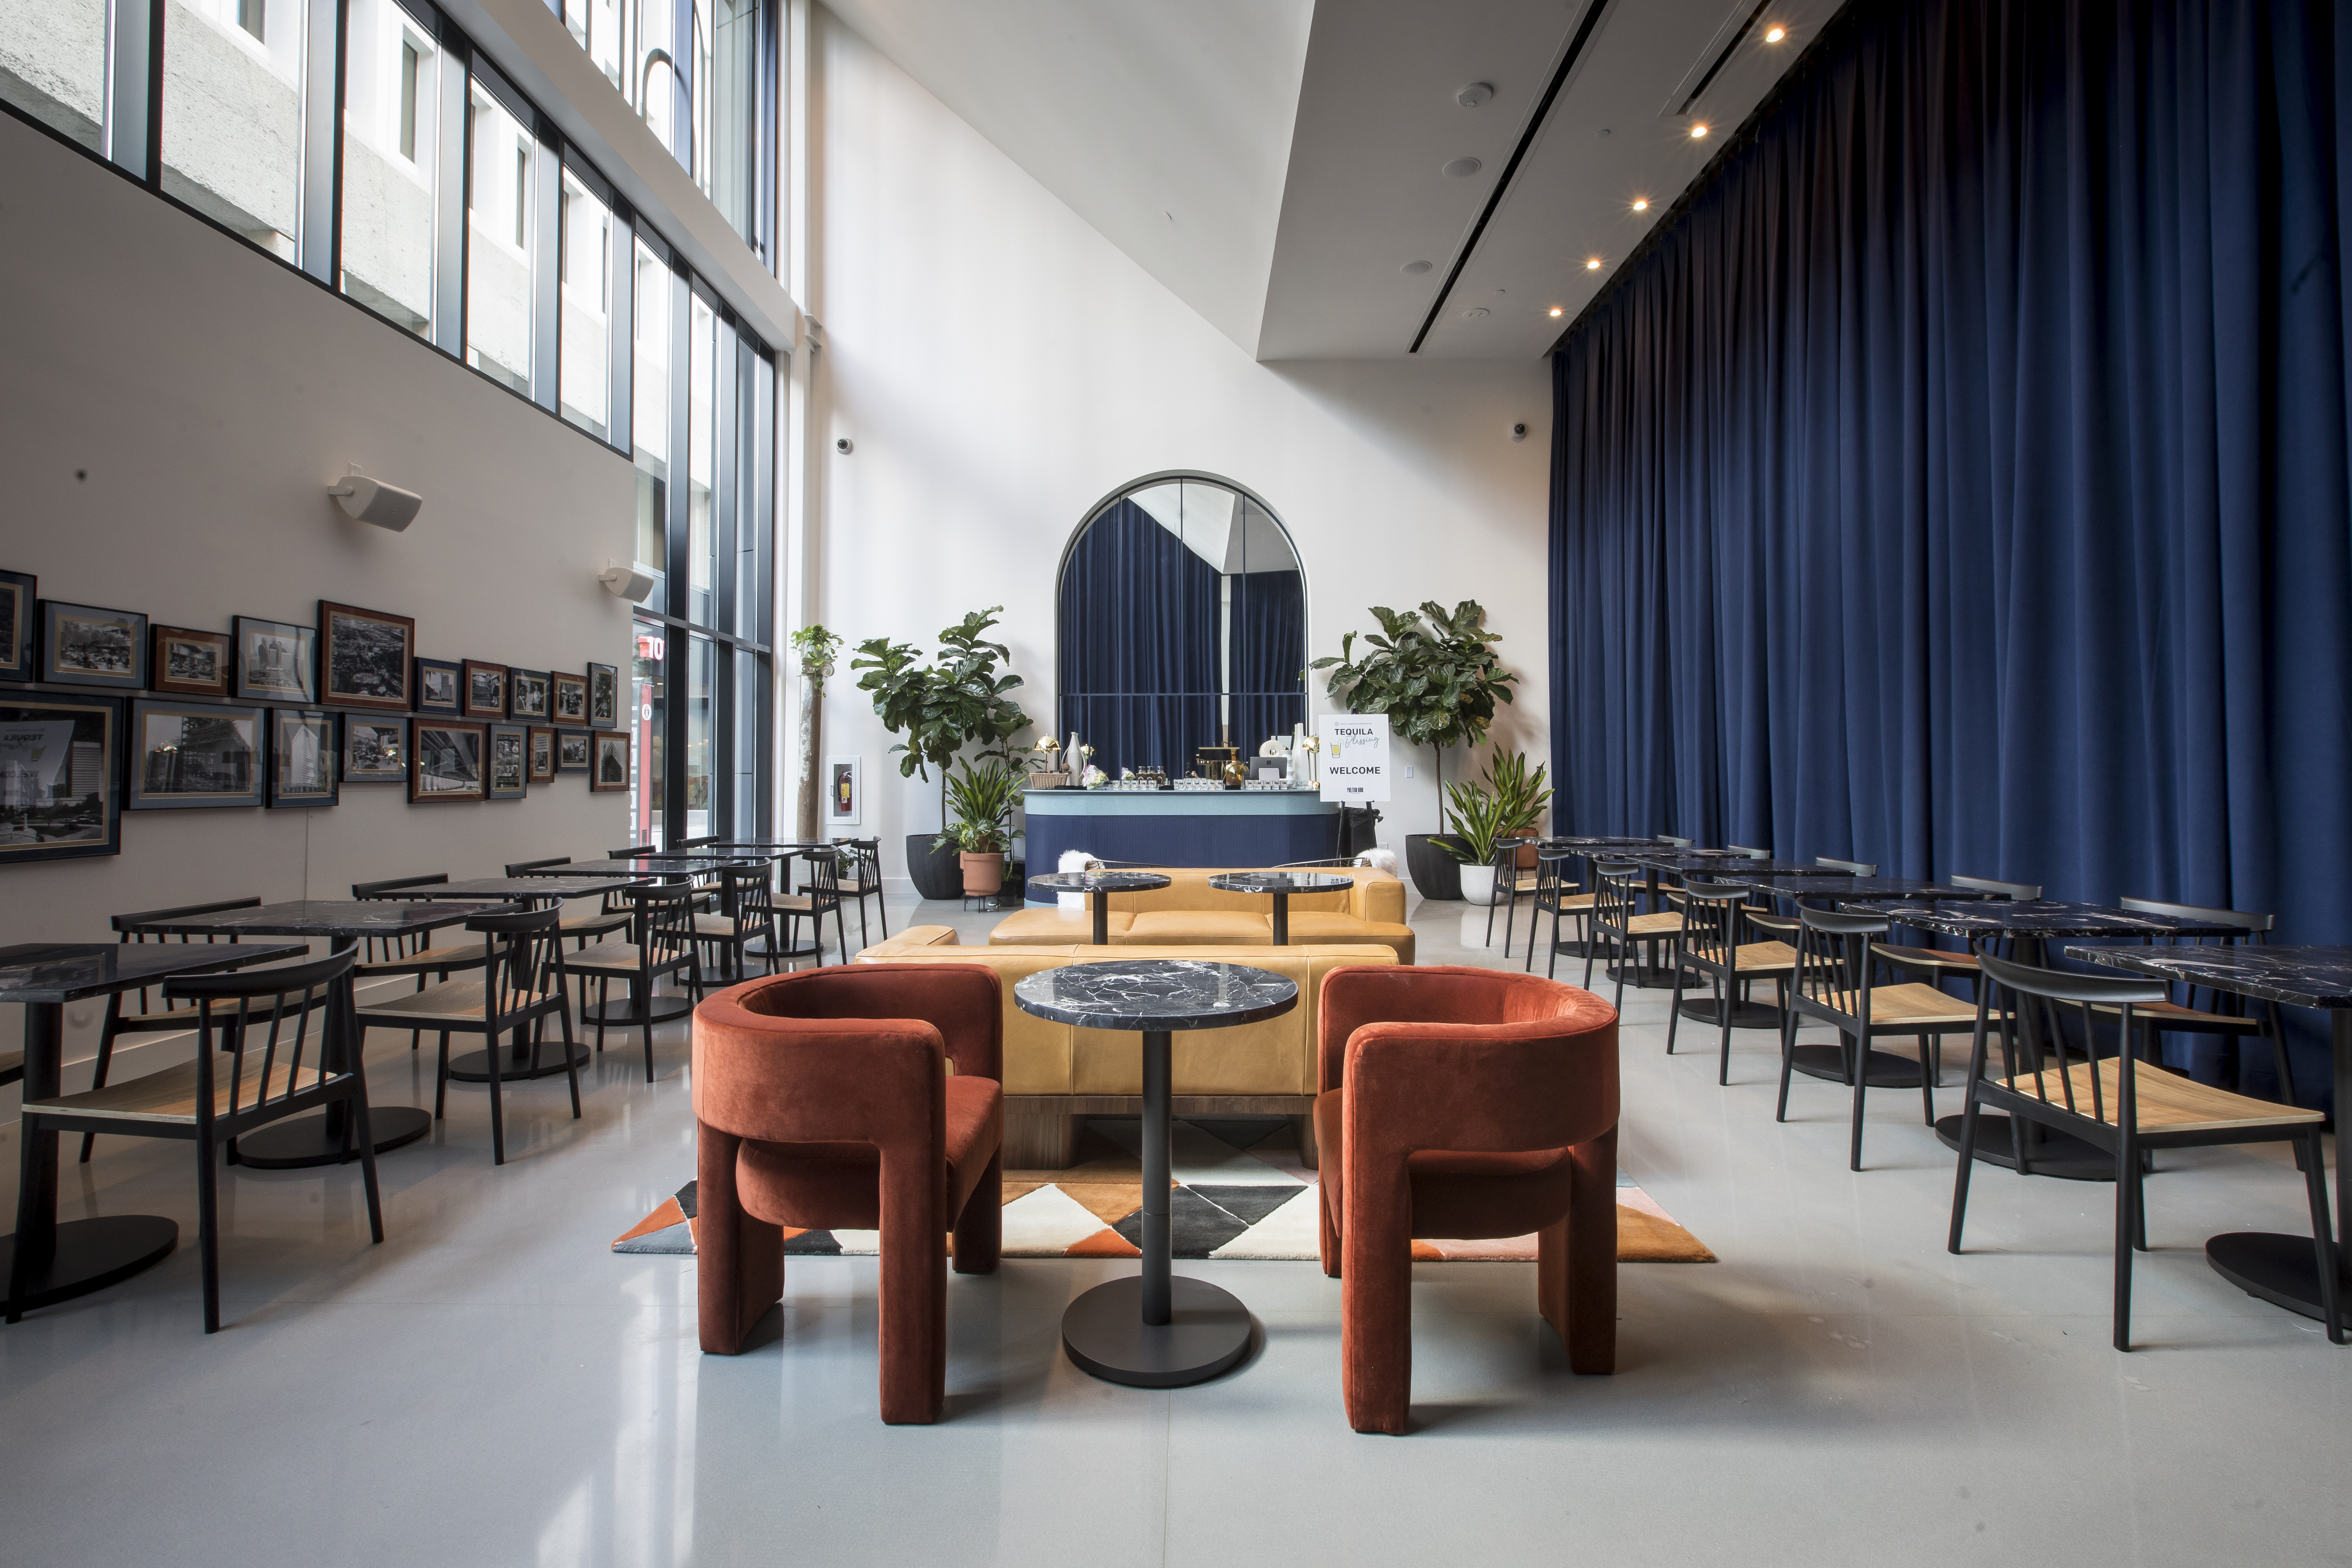 Politan Row food hall dining area with three rows of mid-century modern tables and chairs